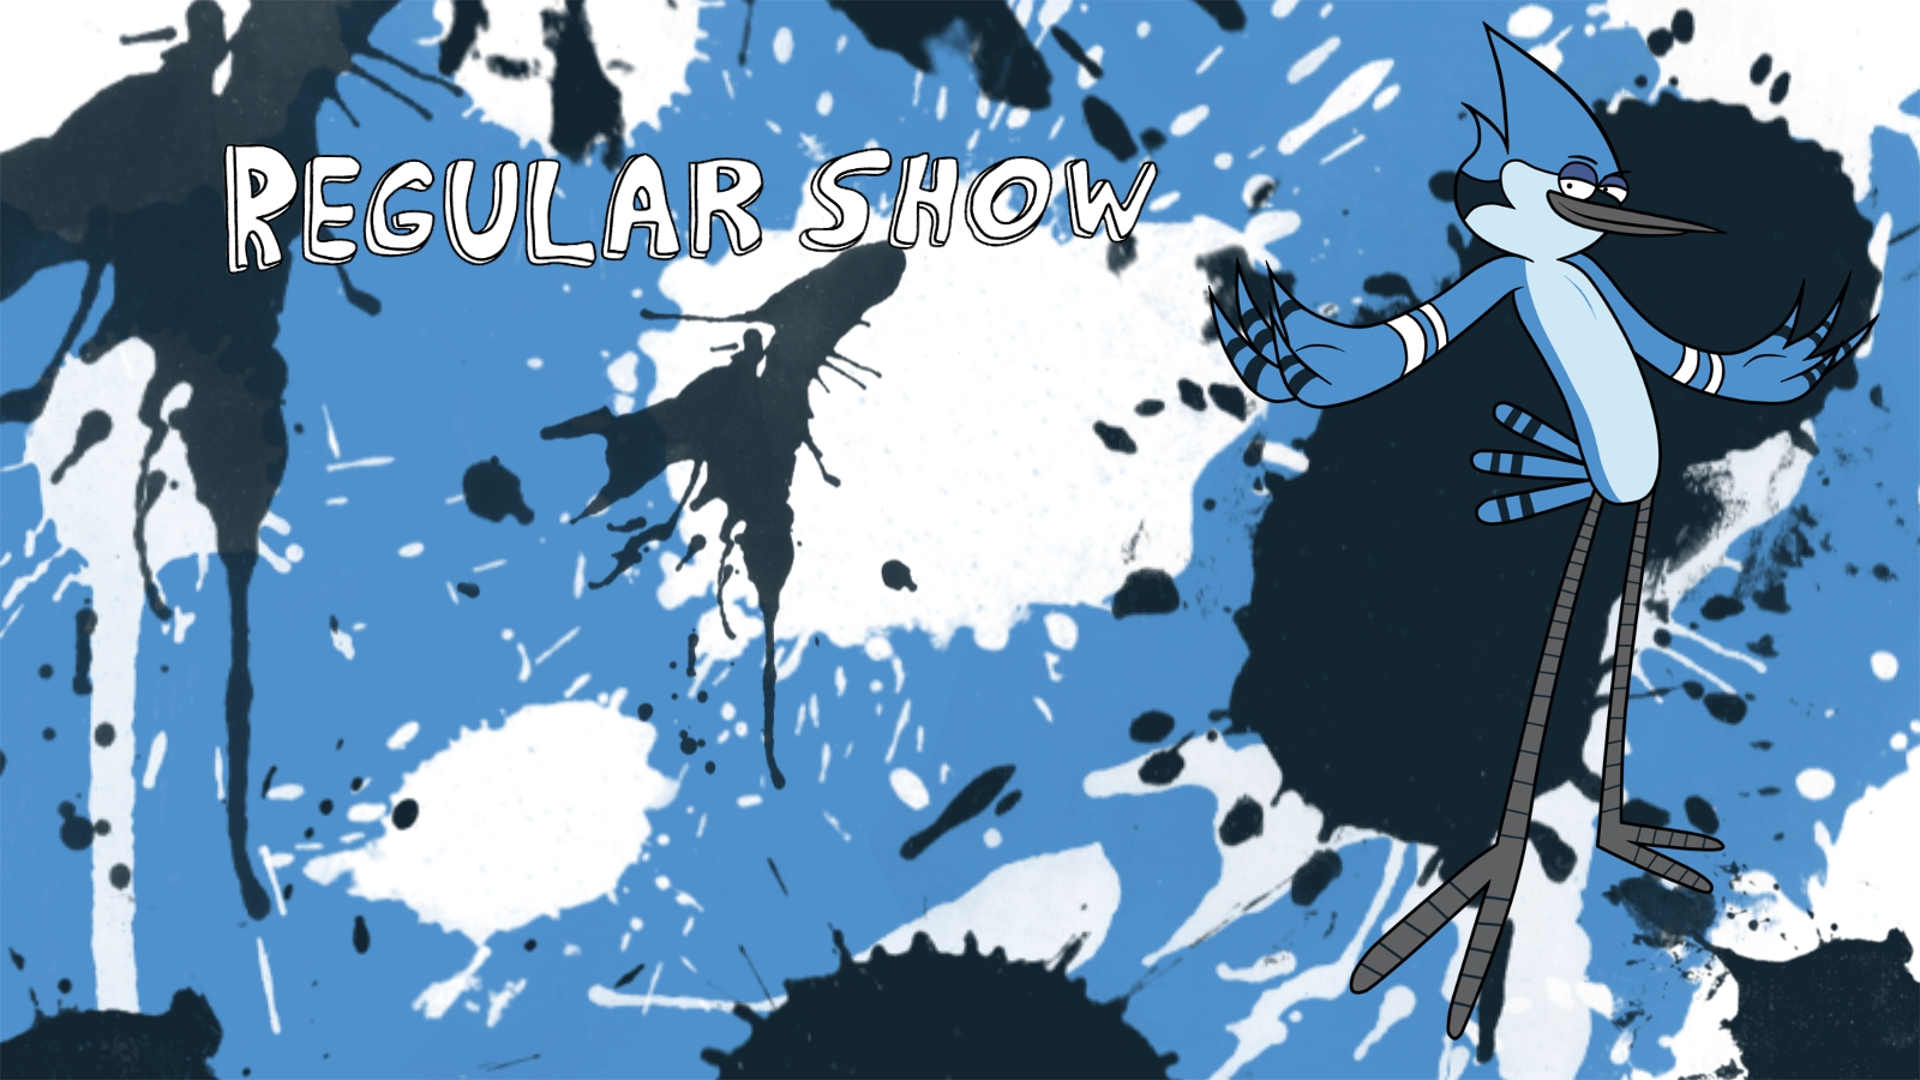 HD Regular Show Wallpapers